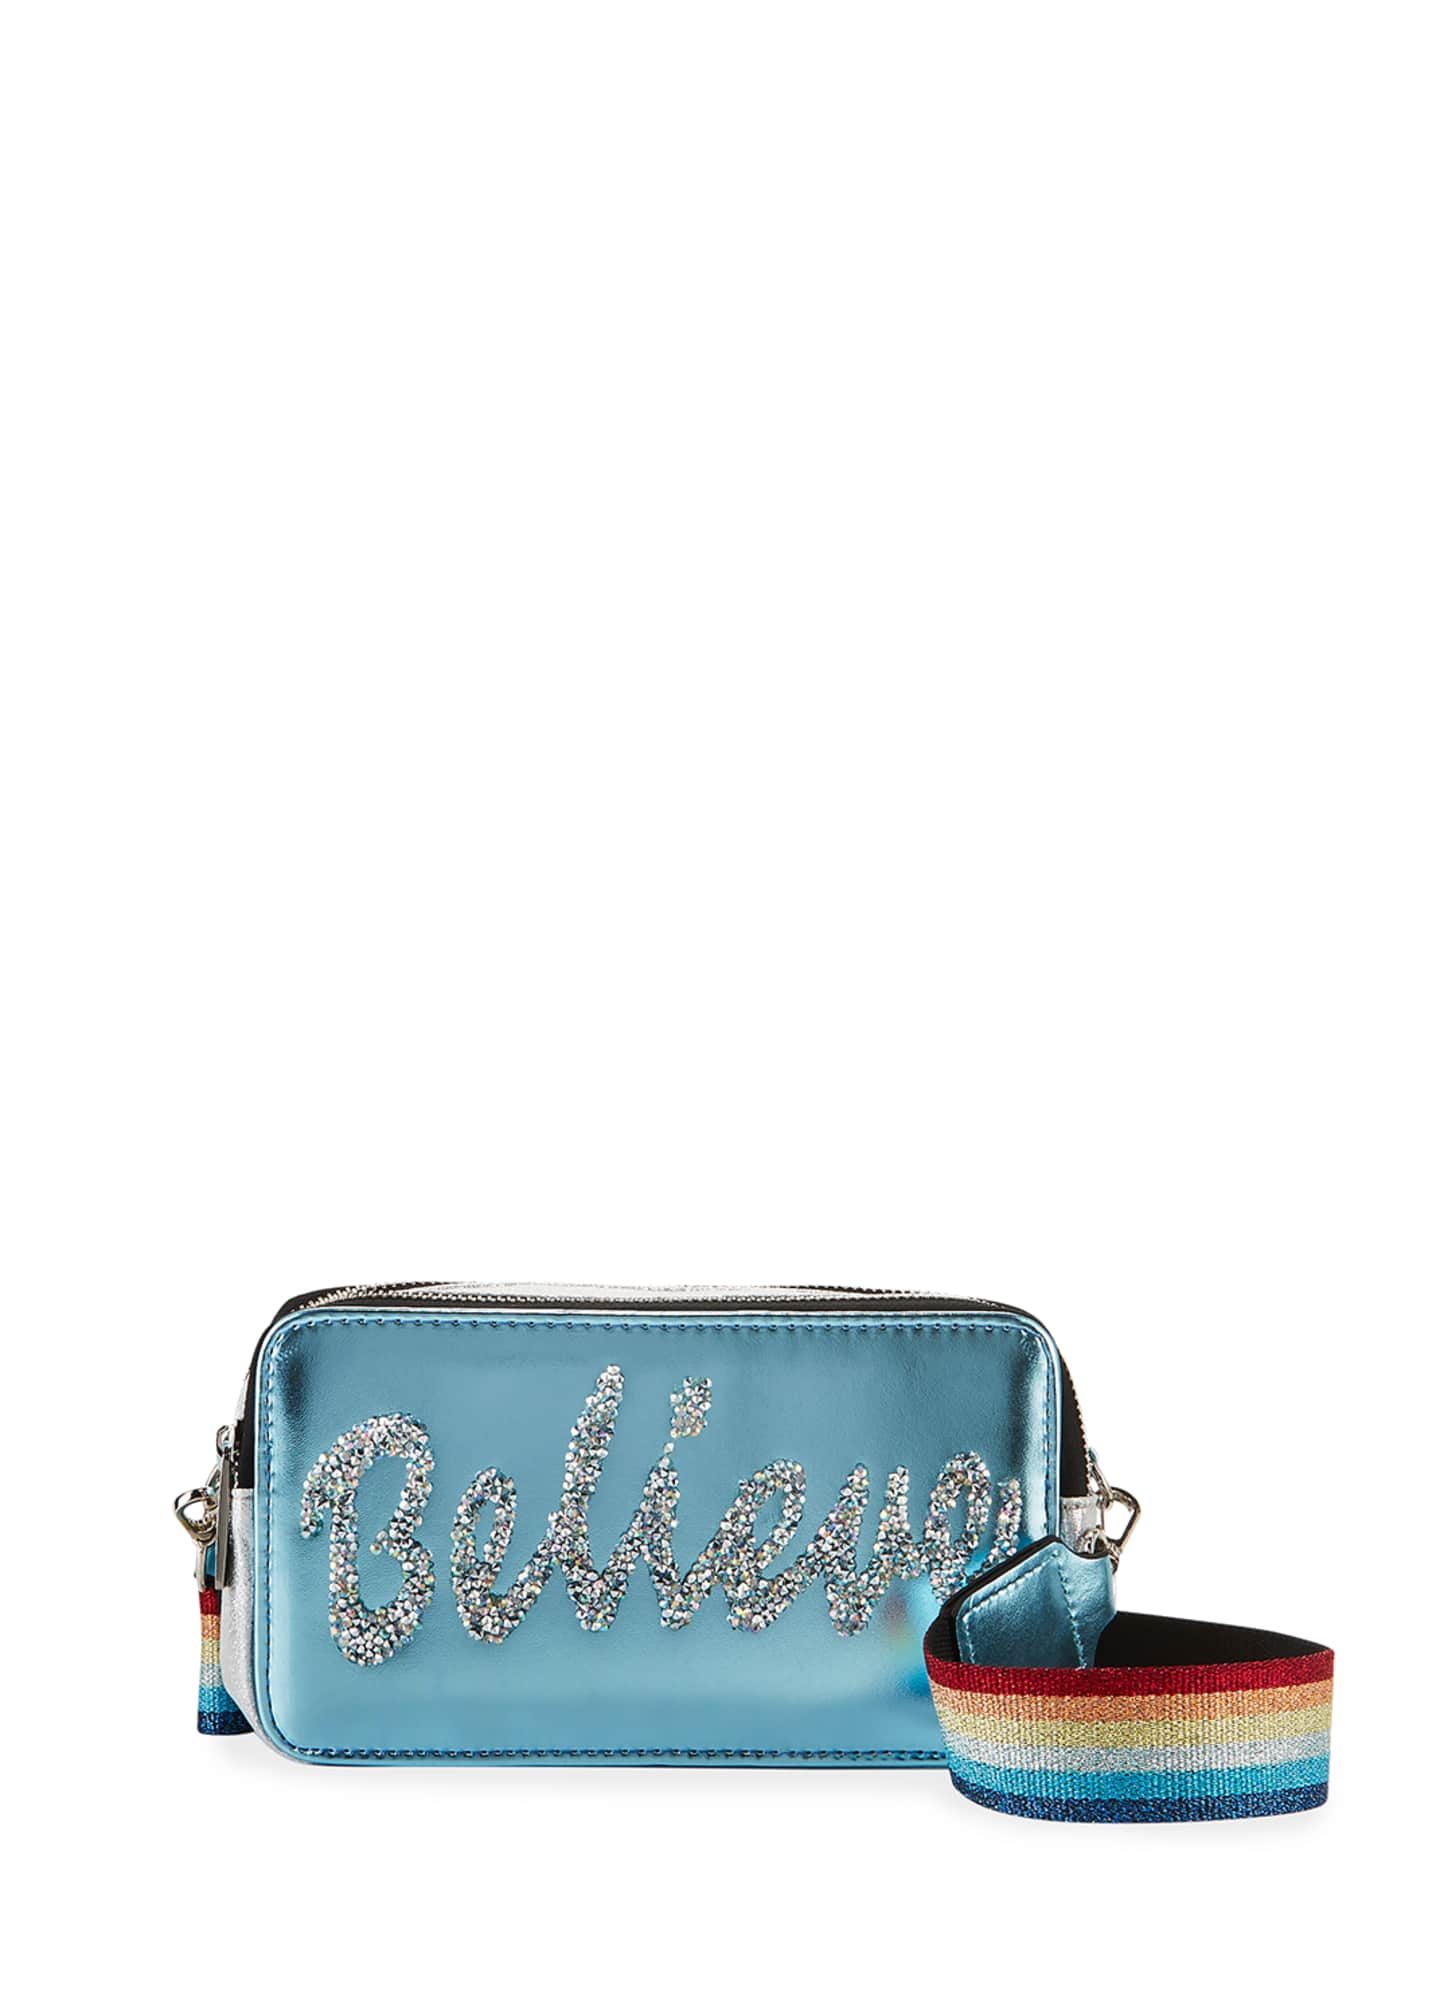 Image 1 of 3: Girl's Believe Camera Bag w/ Rainbow Strap